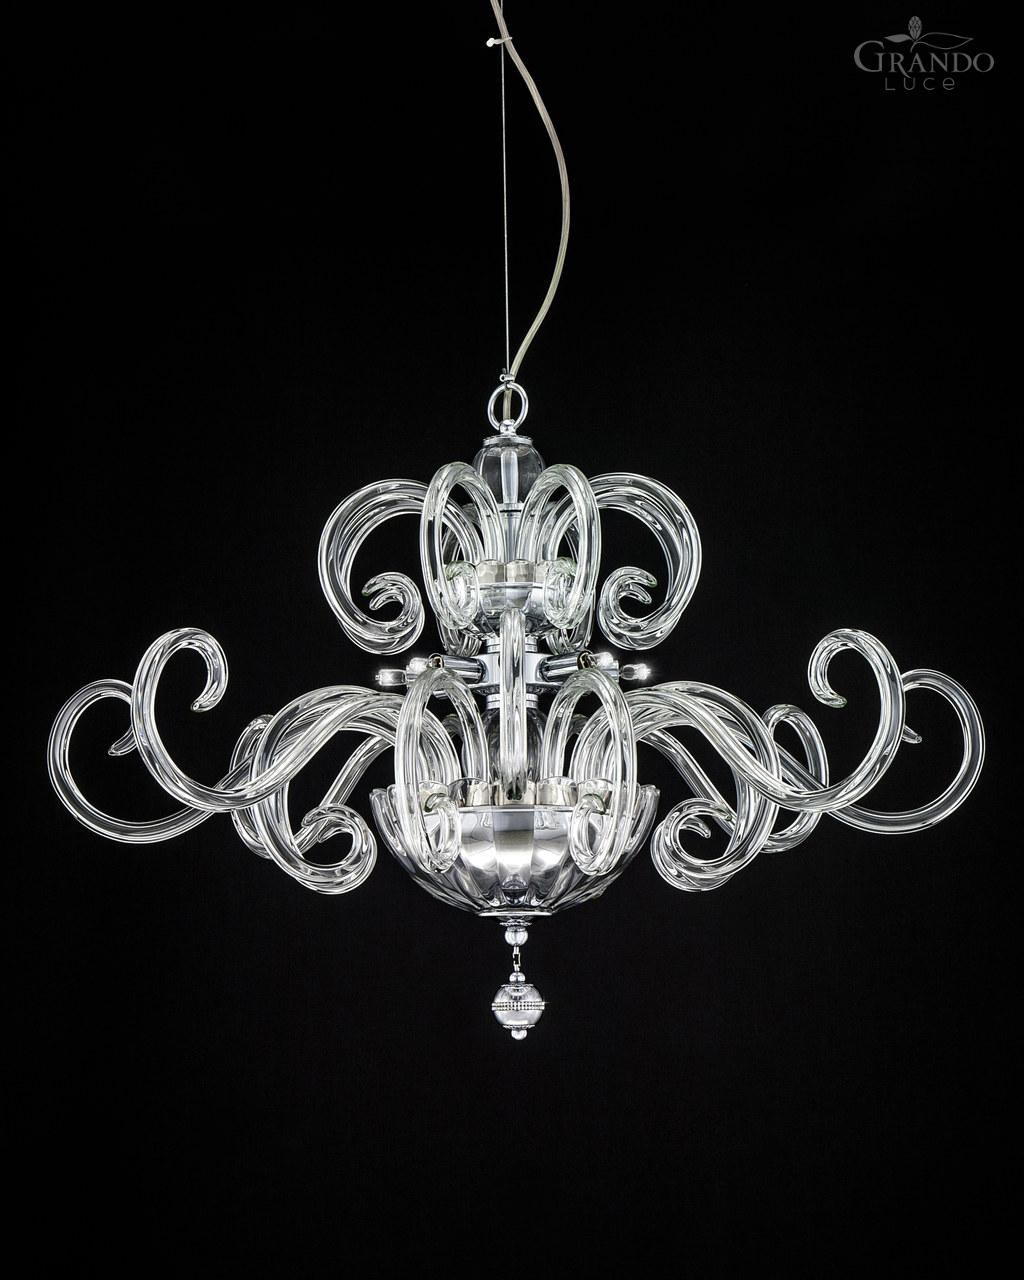 119sm Chrome Modern Crystal Chandelier With Swarovski Elements Intended For Chrome And Crystal Chandelier (View 5 of 15)